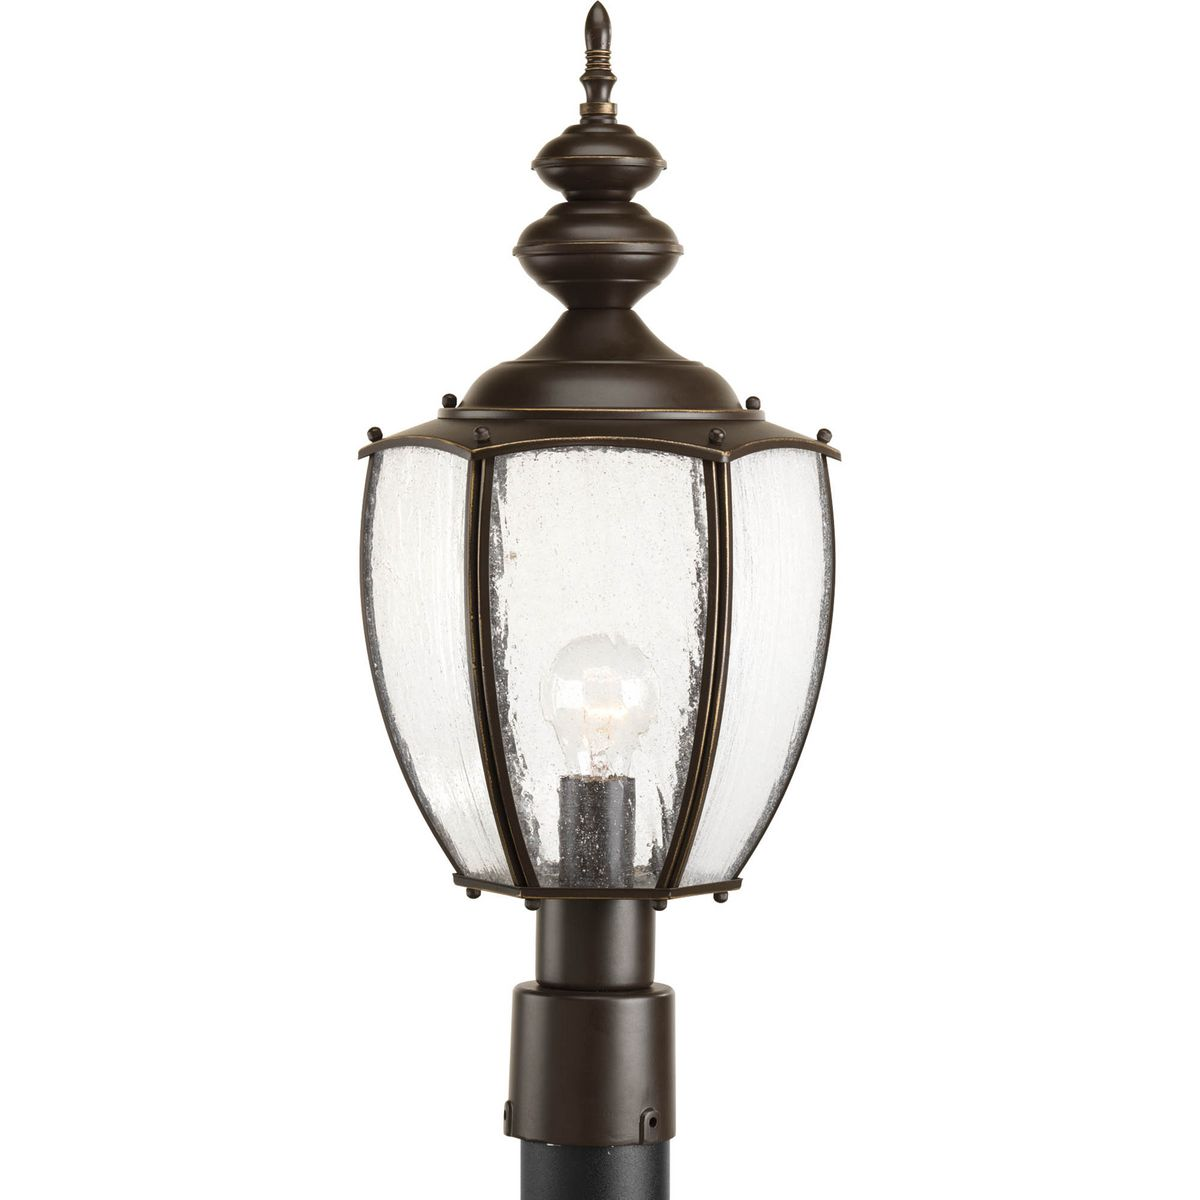 PRO P6417-20 1X100M Roman Coach Antique Bronze Post Light